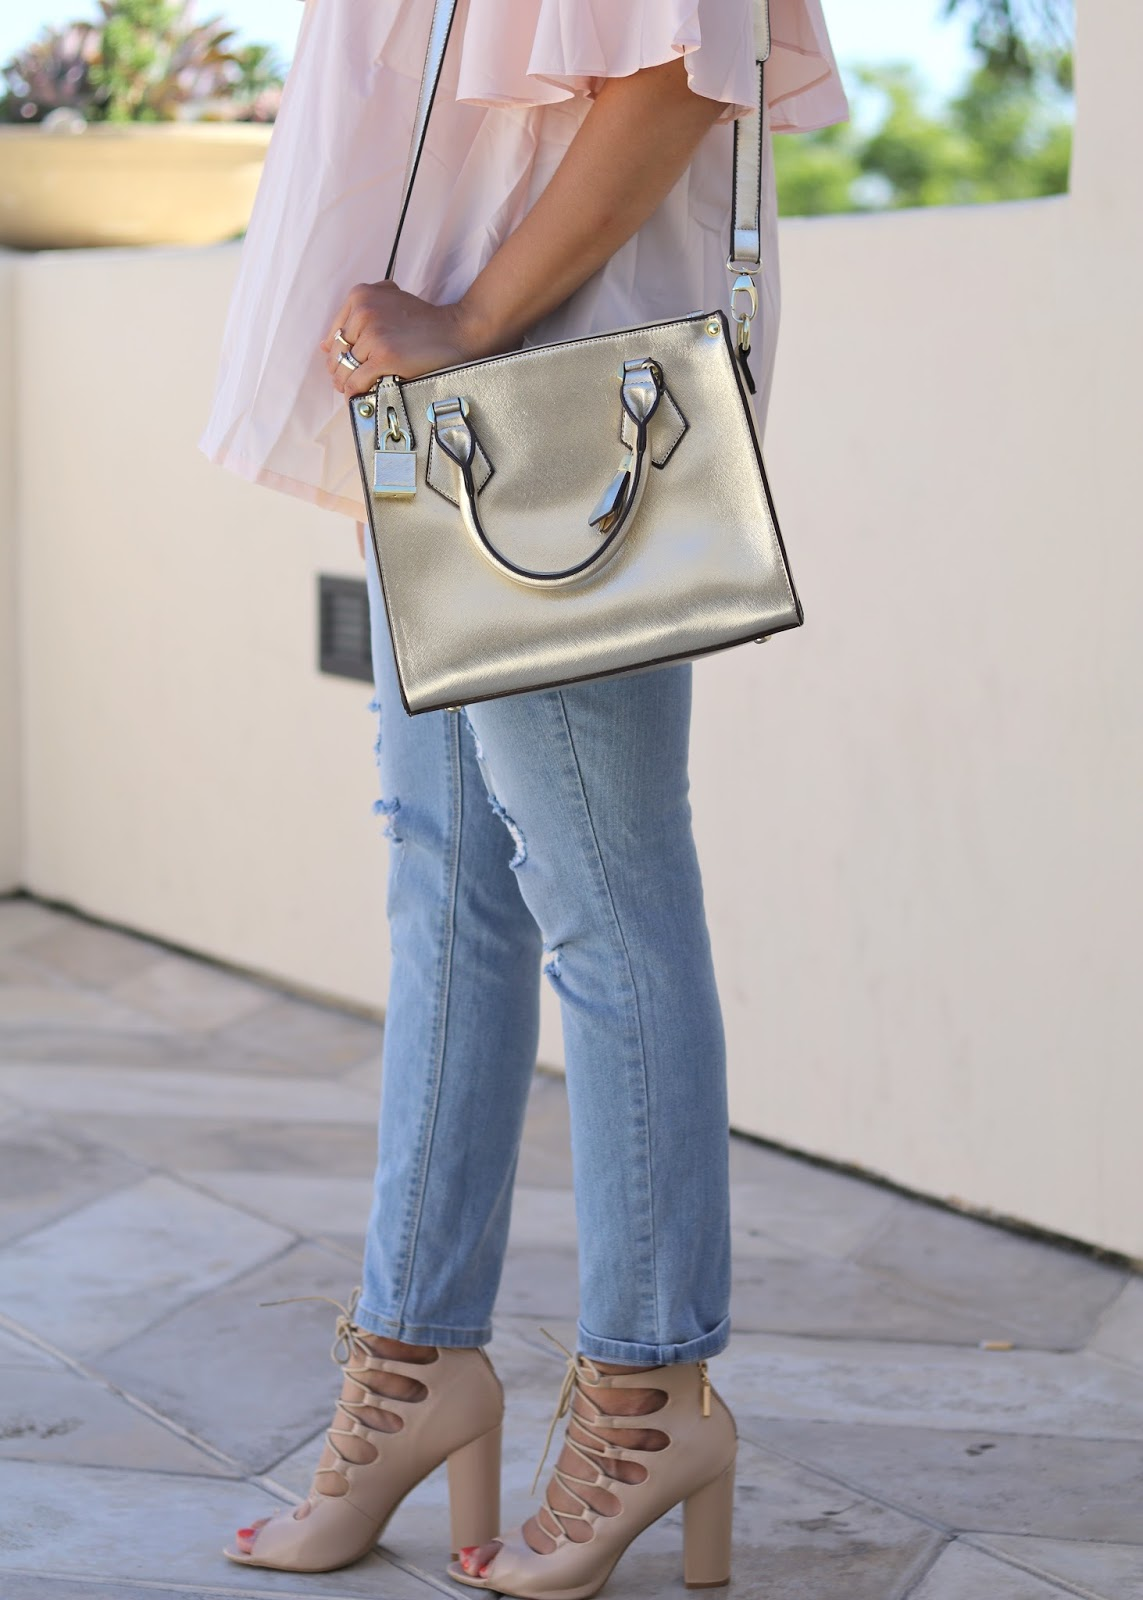 missguided heels, gold handbag, distressed jeans outfit, rampage distressed jeans, socal blogger, socal fashion blogger